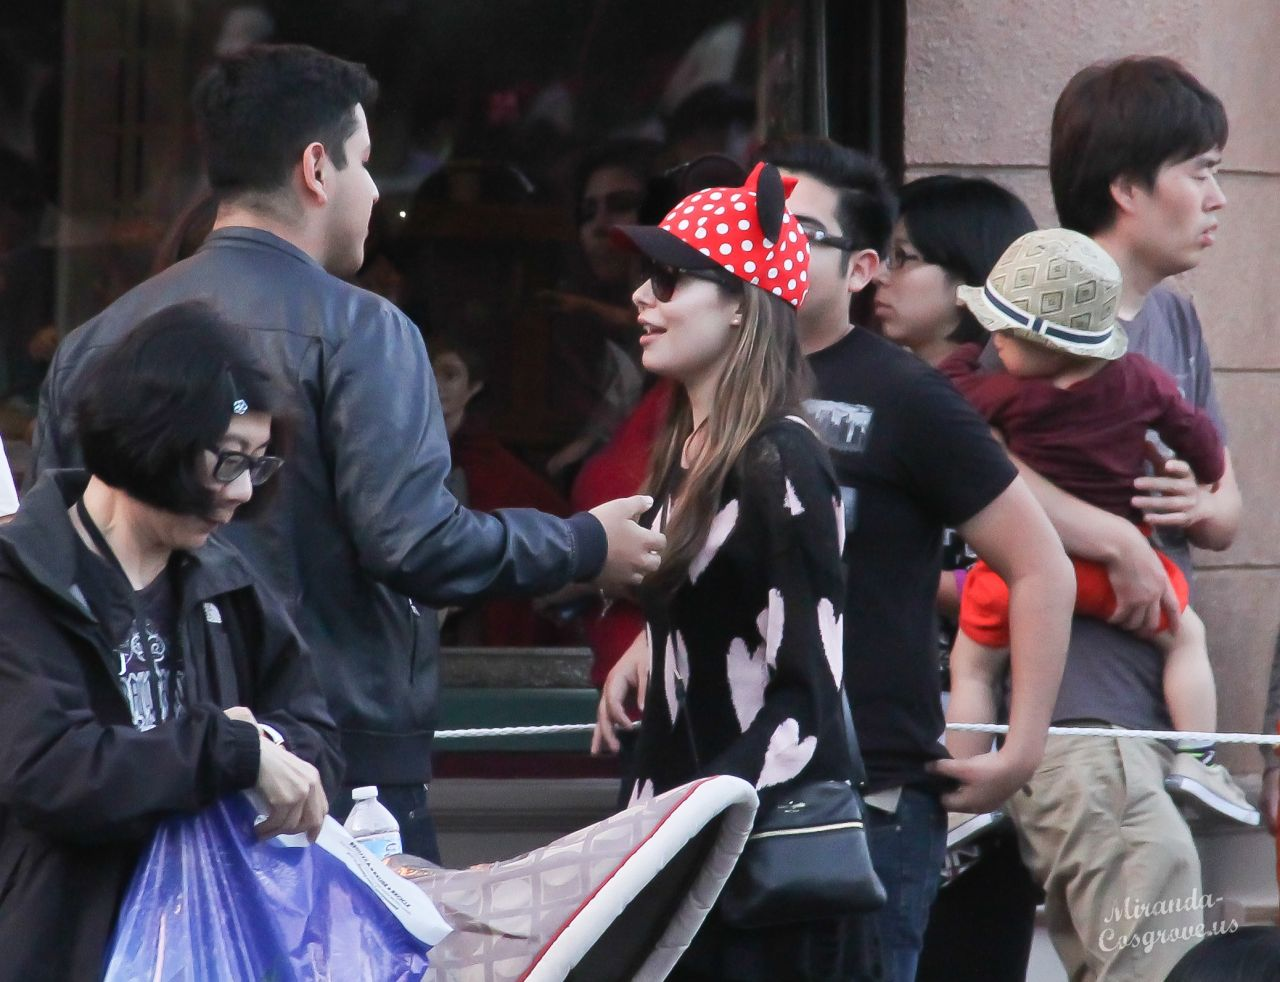 Miranda Cosgrove in Disneyland - Feb 2014